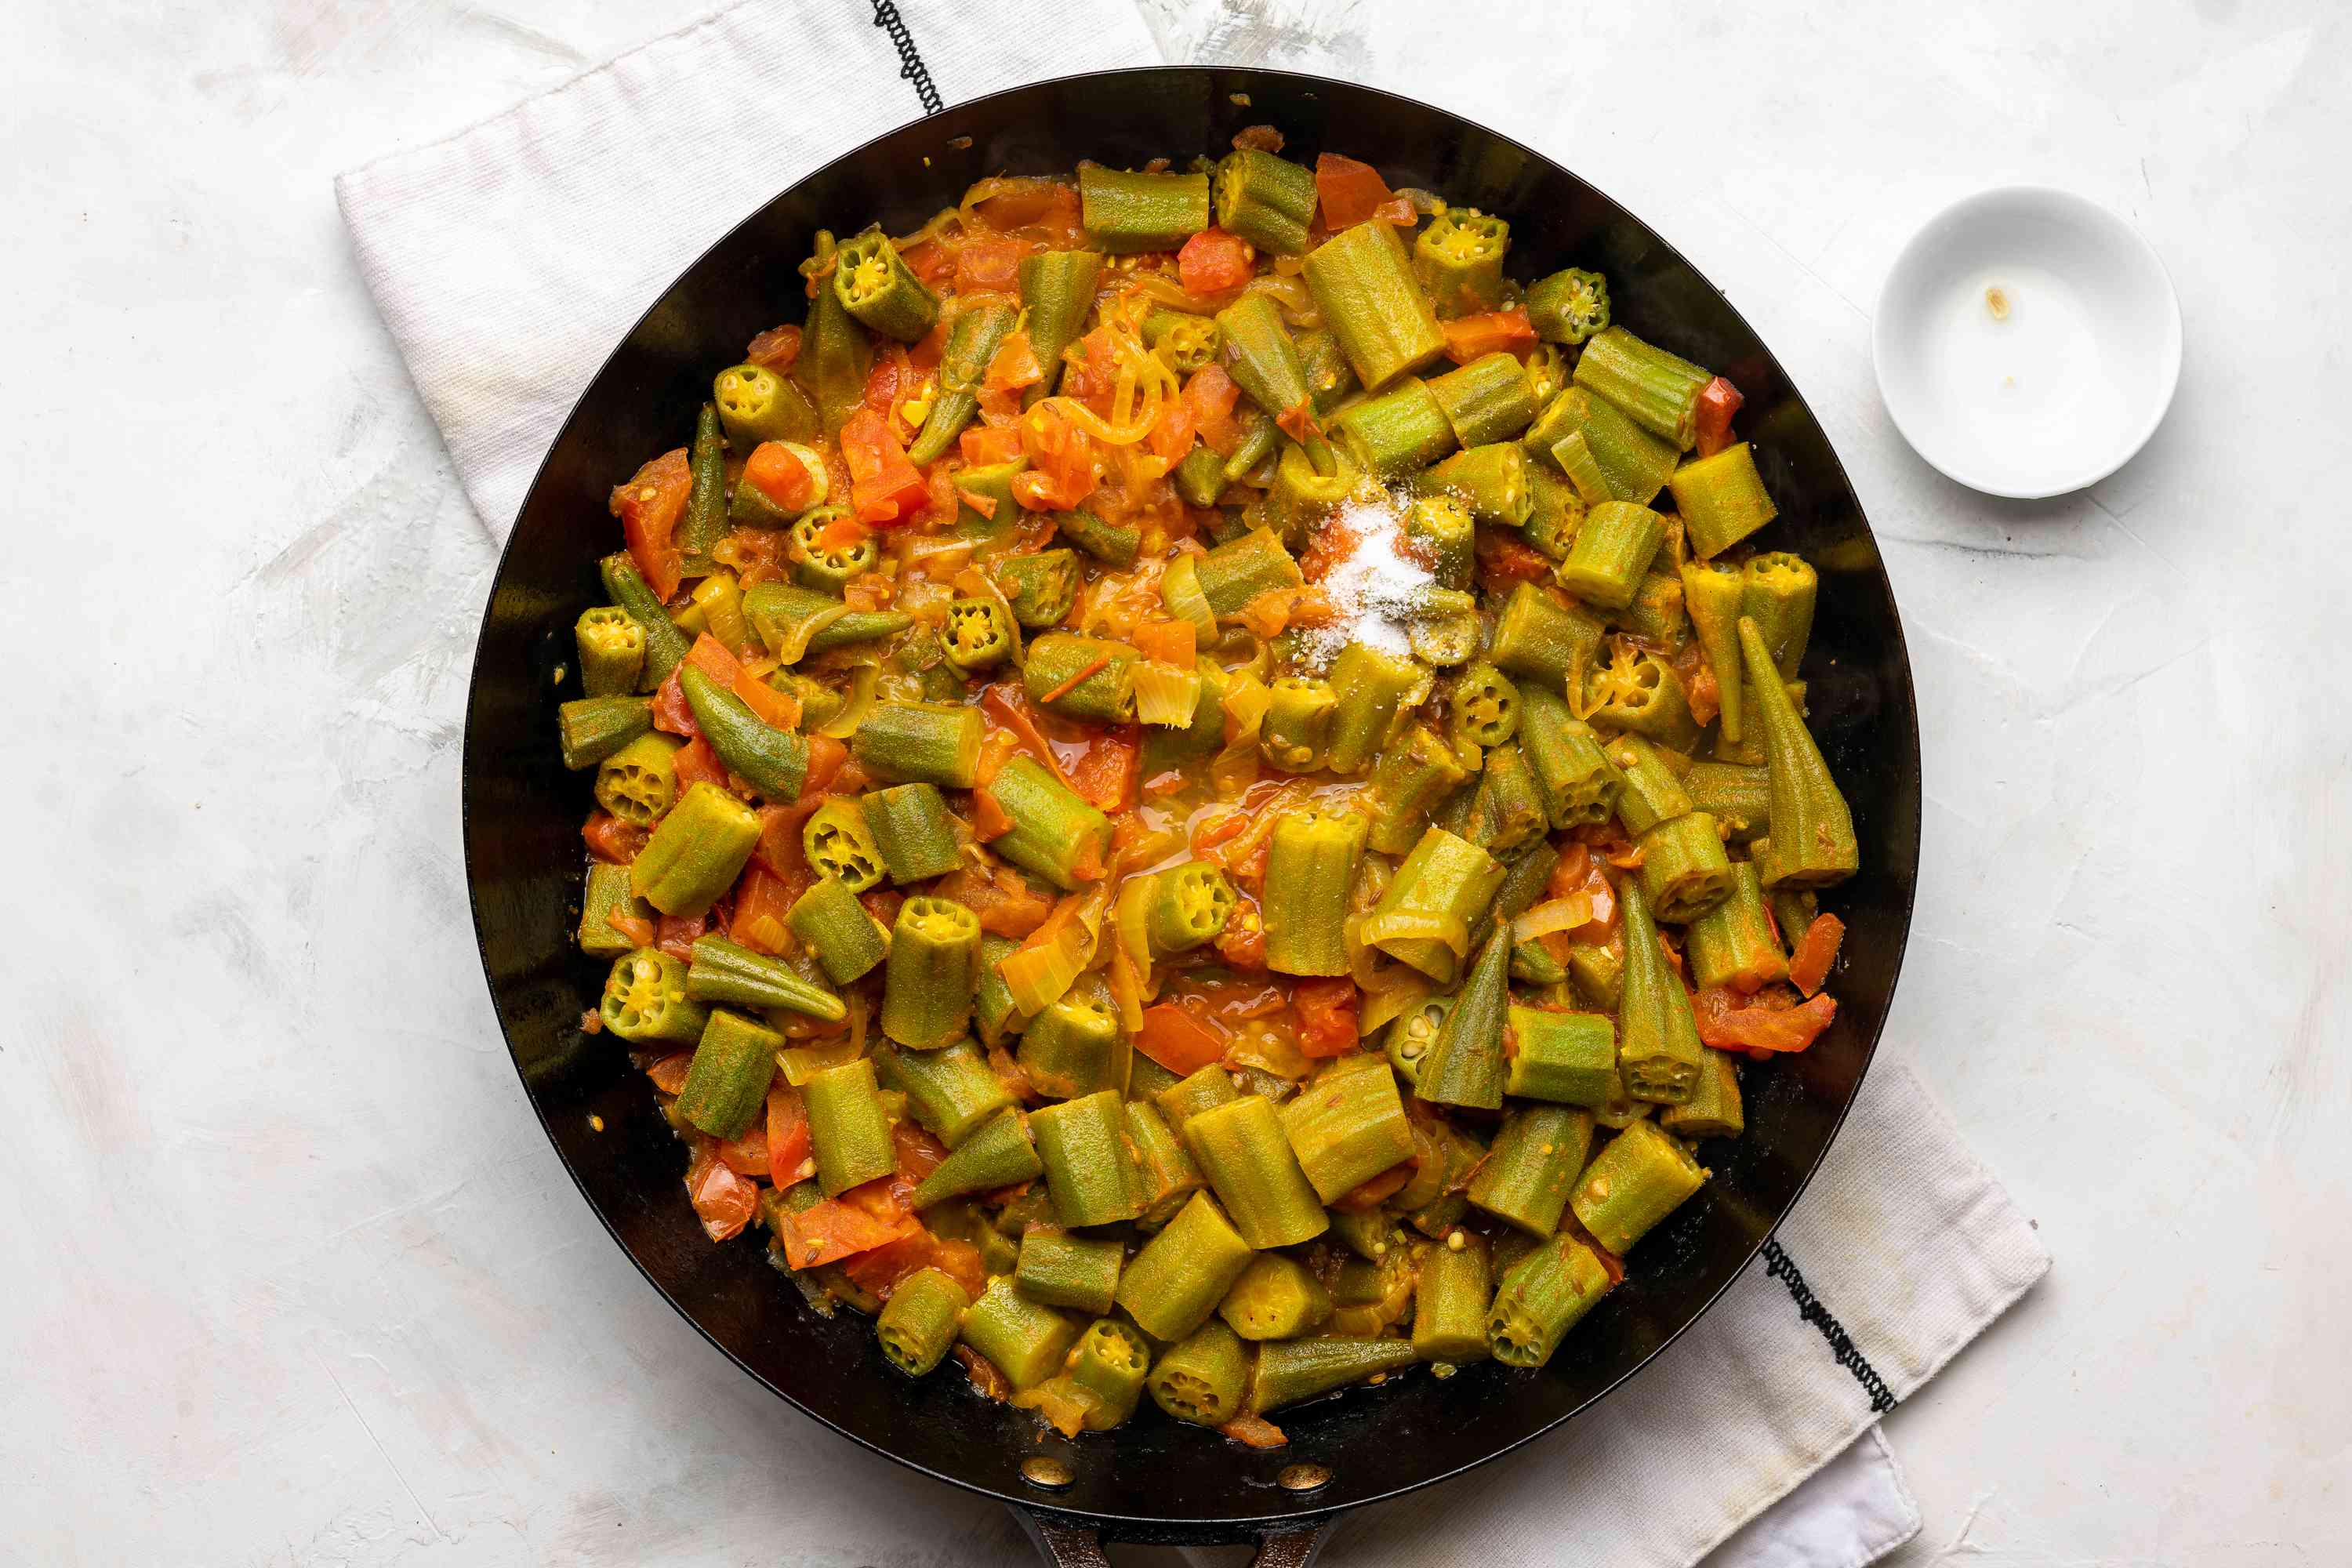 salt and lemon juice added to the okra mixture in the pan